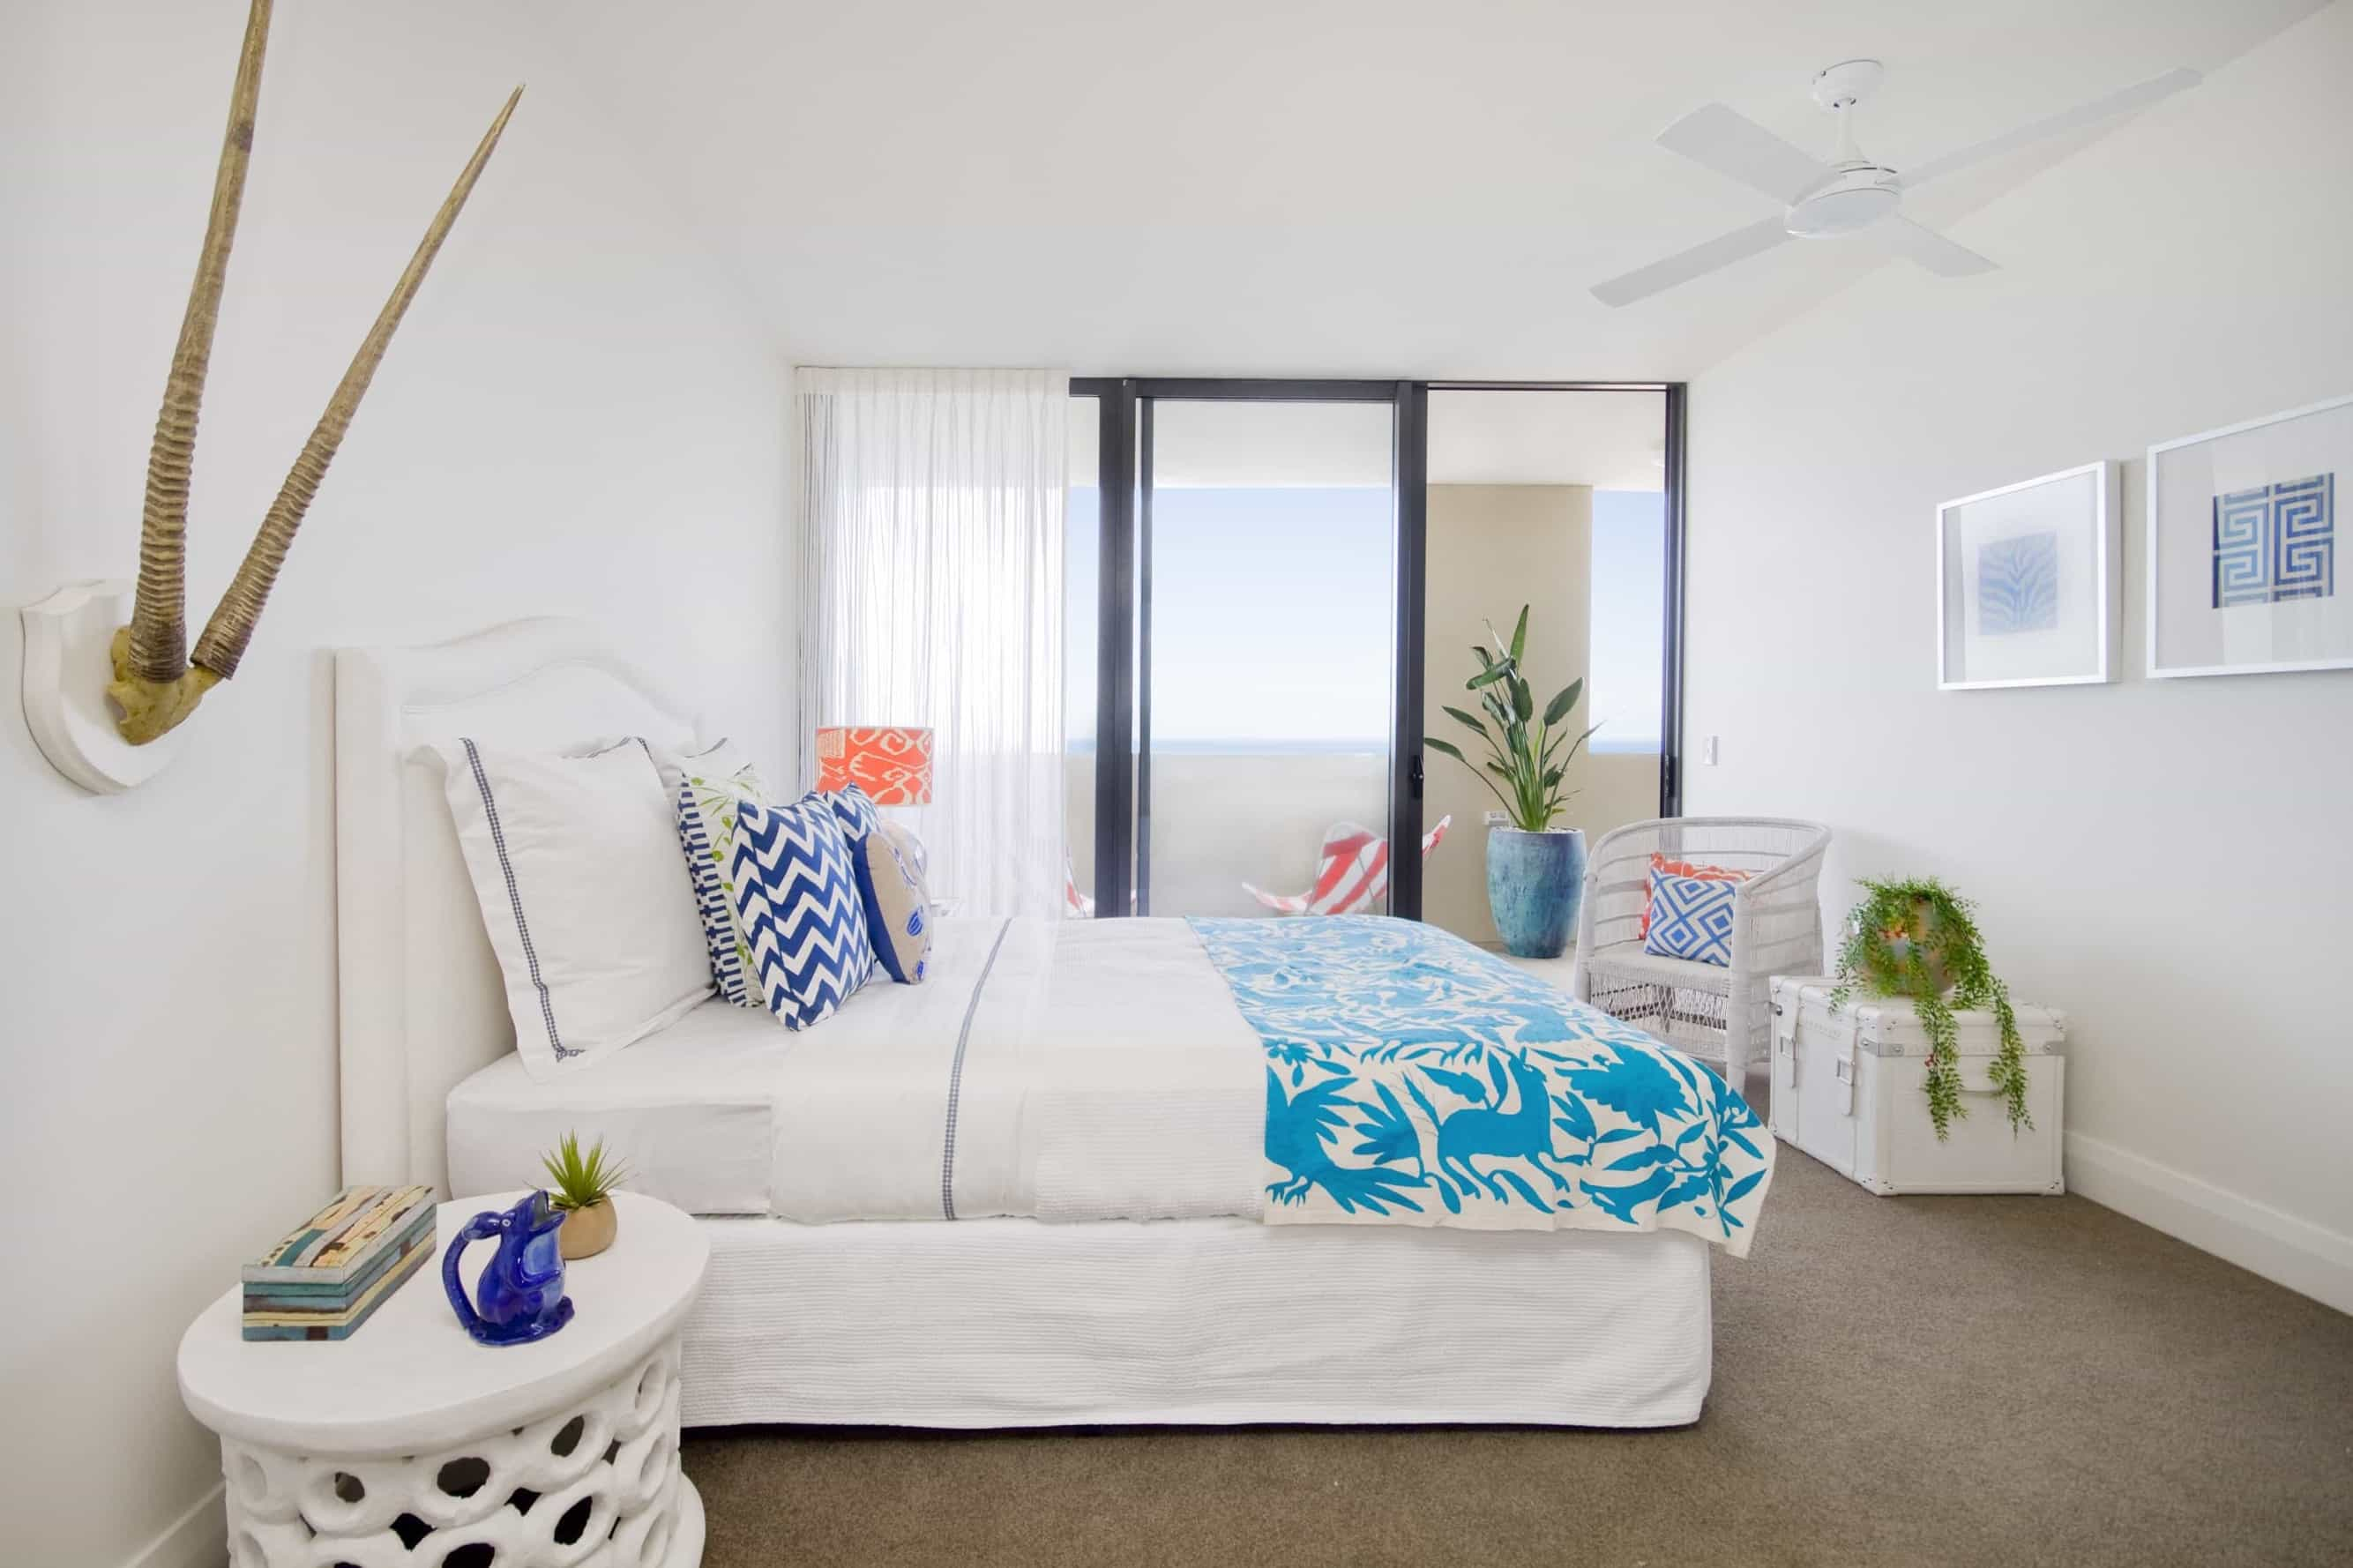 Featured Image of Tranquil Master Bedroom With Balcony Access